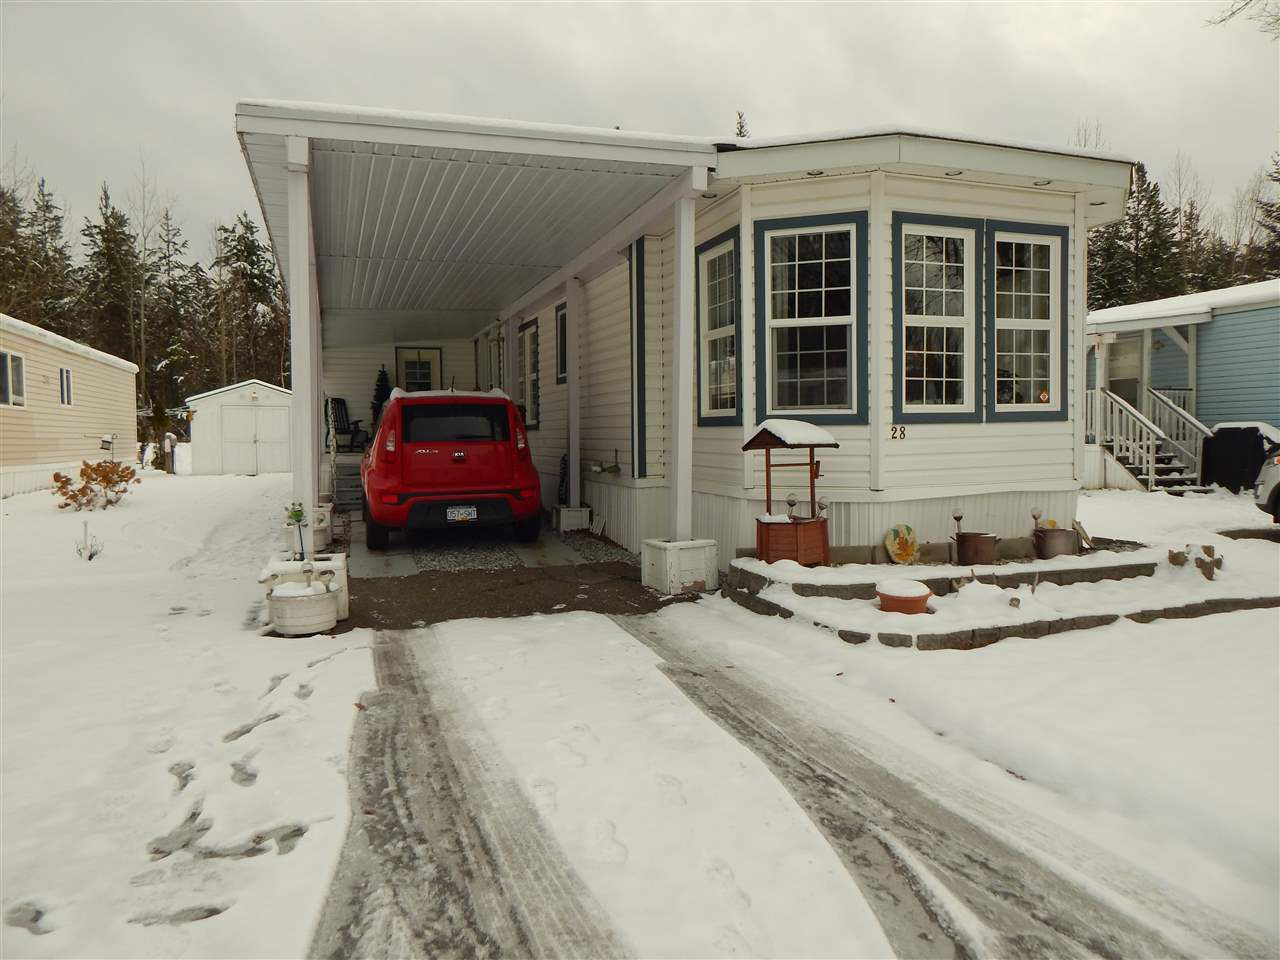 """Main Photo: 28 1000 INVERNESS Road in Prince George: Aberdeen PG Manufactured Home for sale in """"ABERDEEN - HART HIGHWAY"""" (PG City North (Zone 73))  : MLS®# R2321871"""